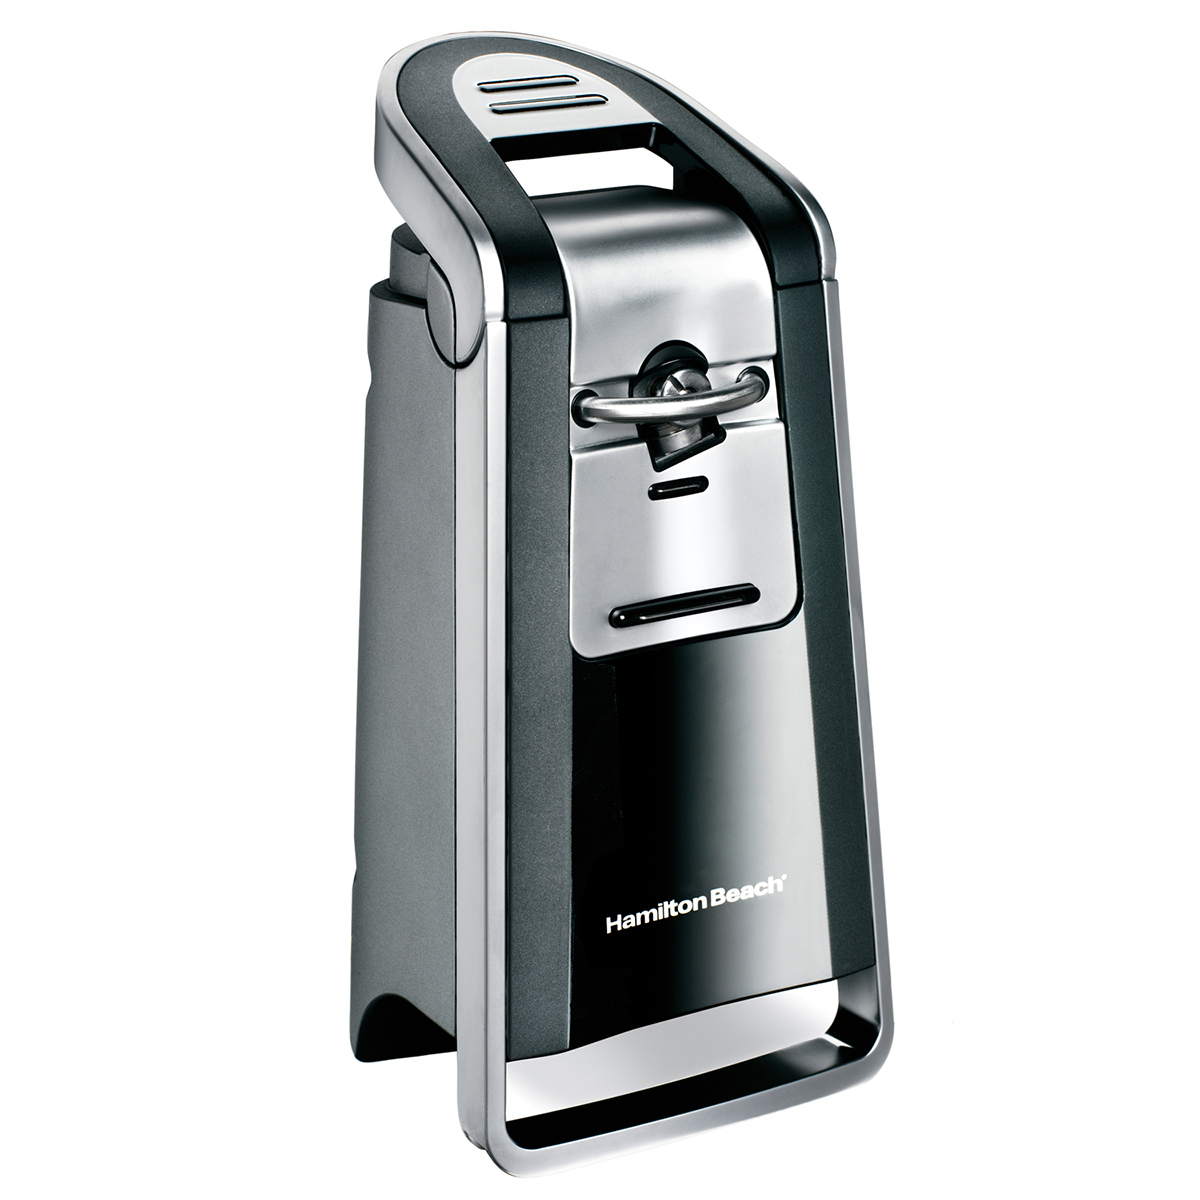 Hamilton Beach Smoothtouch Can Opener Chrome 76607